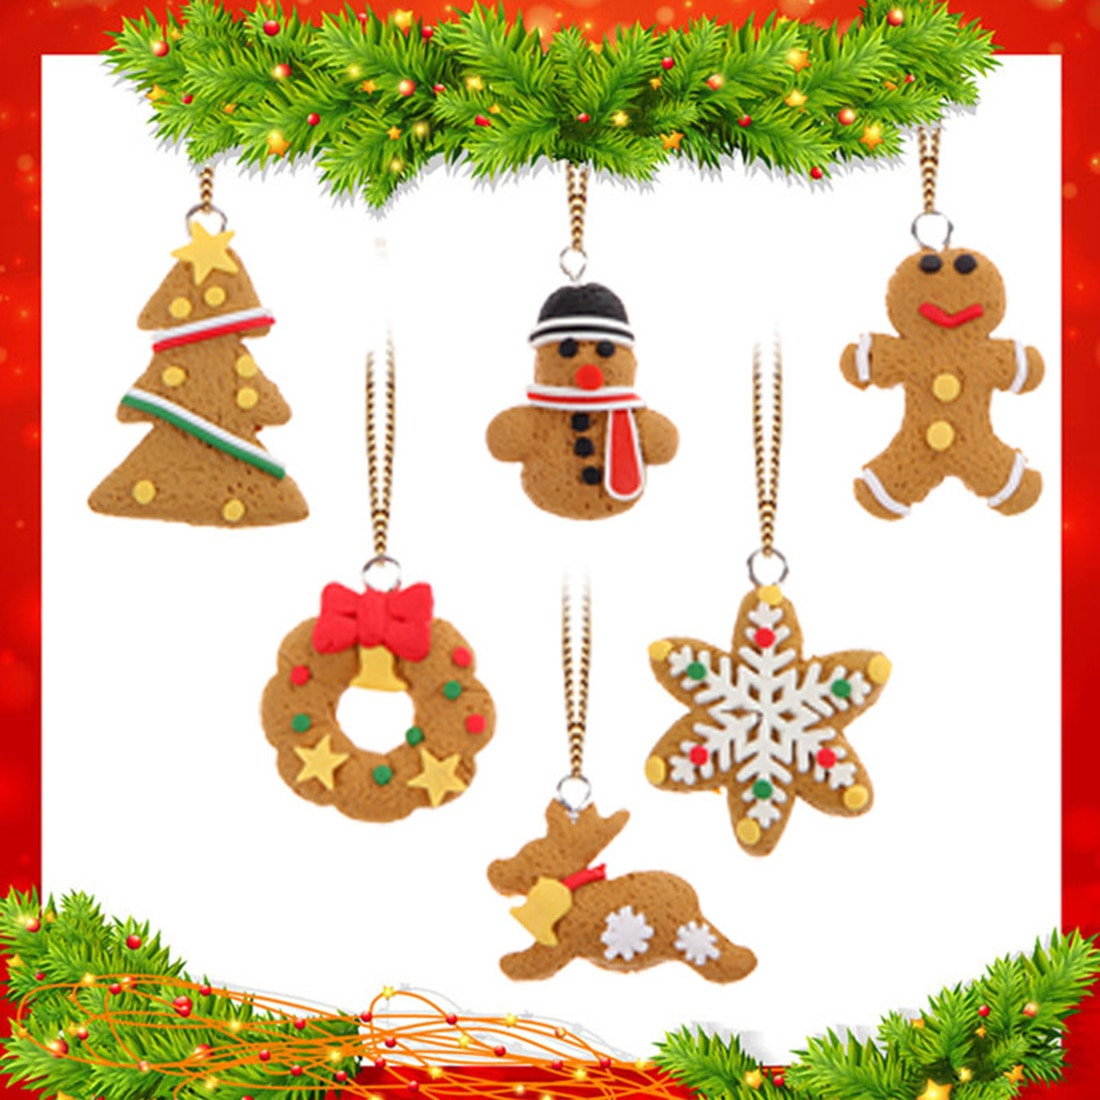 Christmas ornaments Sale Luxury Big Sale 6pcs Mini Christmas Tree Hanging Accessories Of Lovely 41 Photos Christmas ornaments Sale